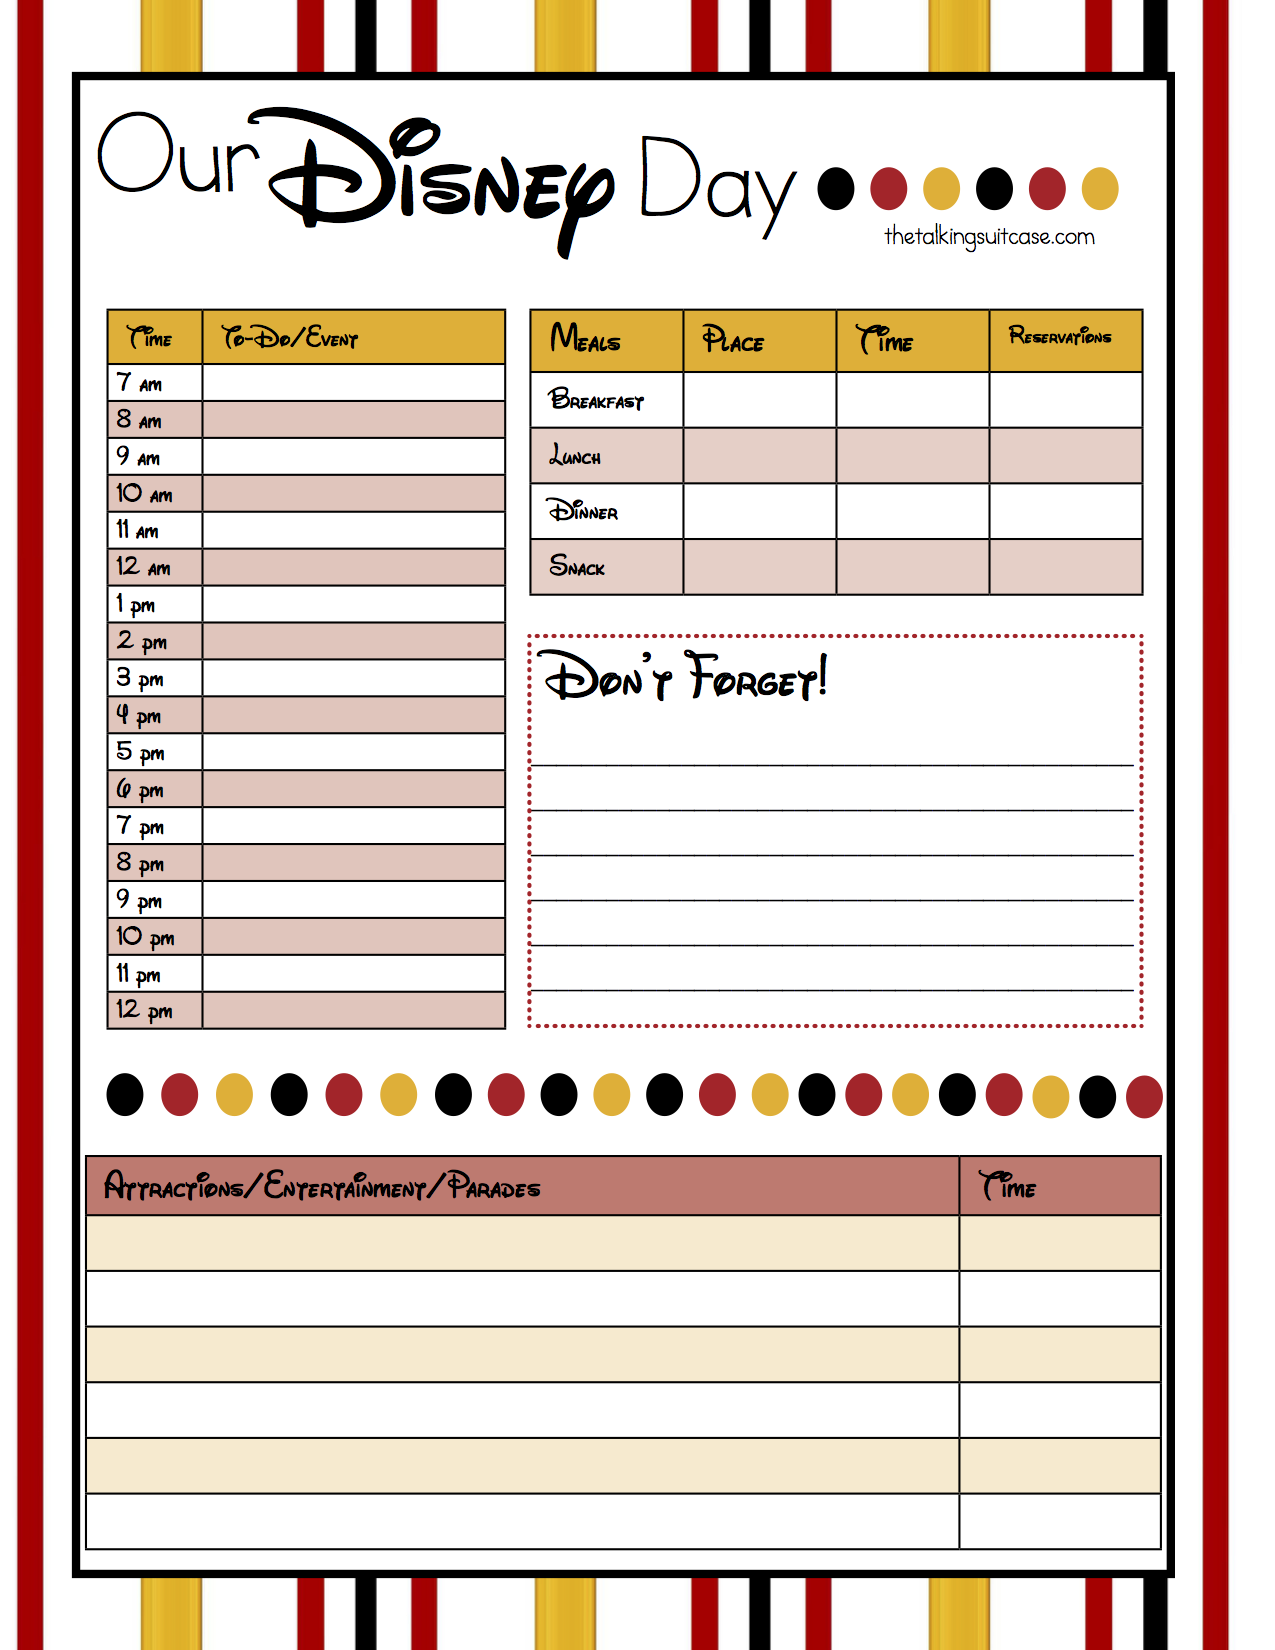 Free Printable Disney Vacation Planner  Disney vacations